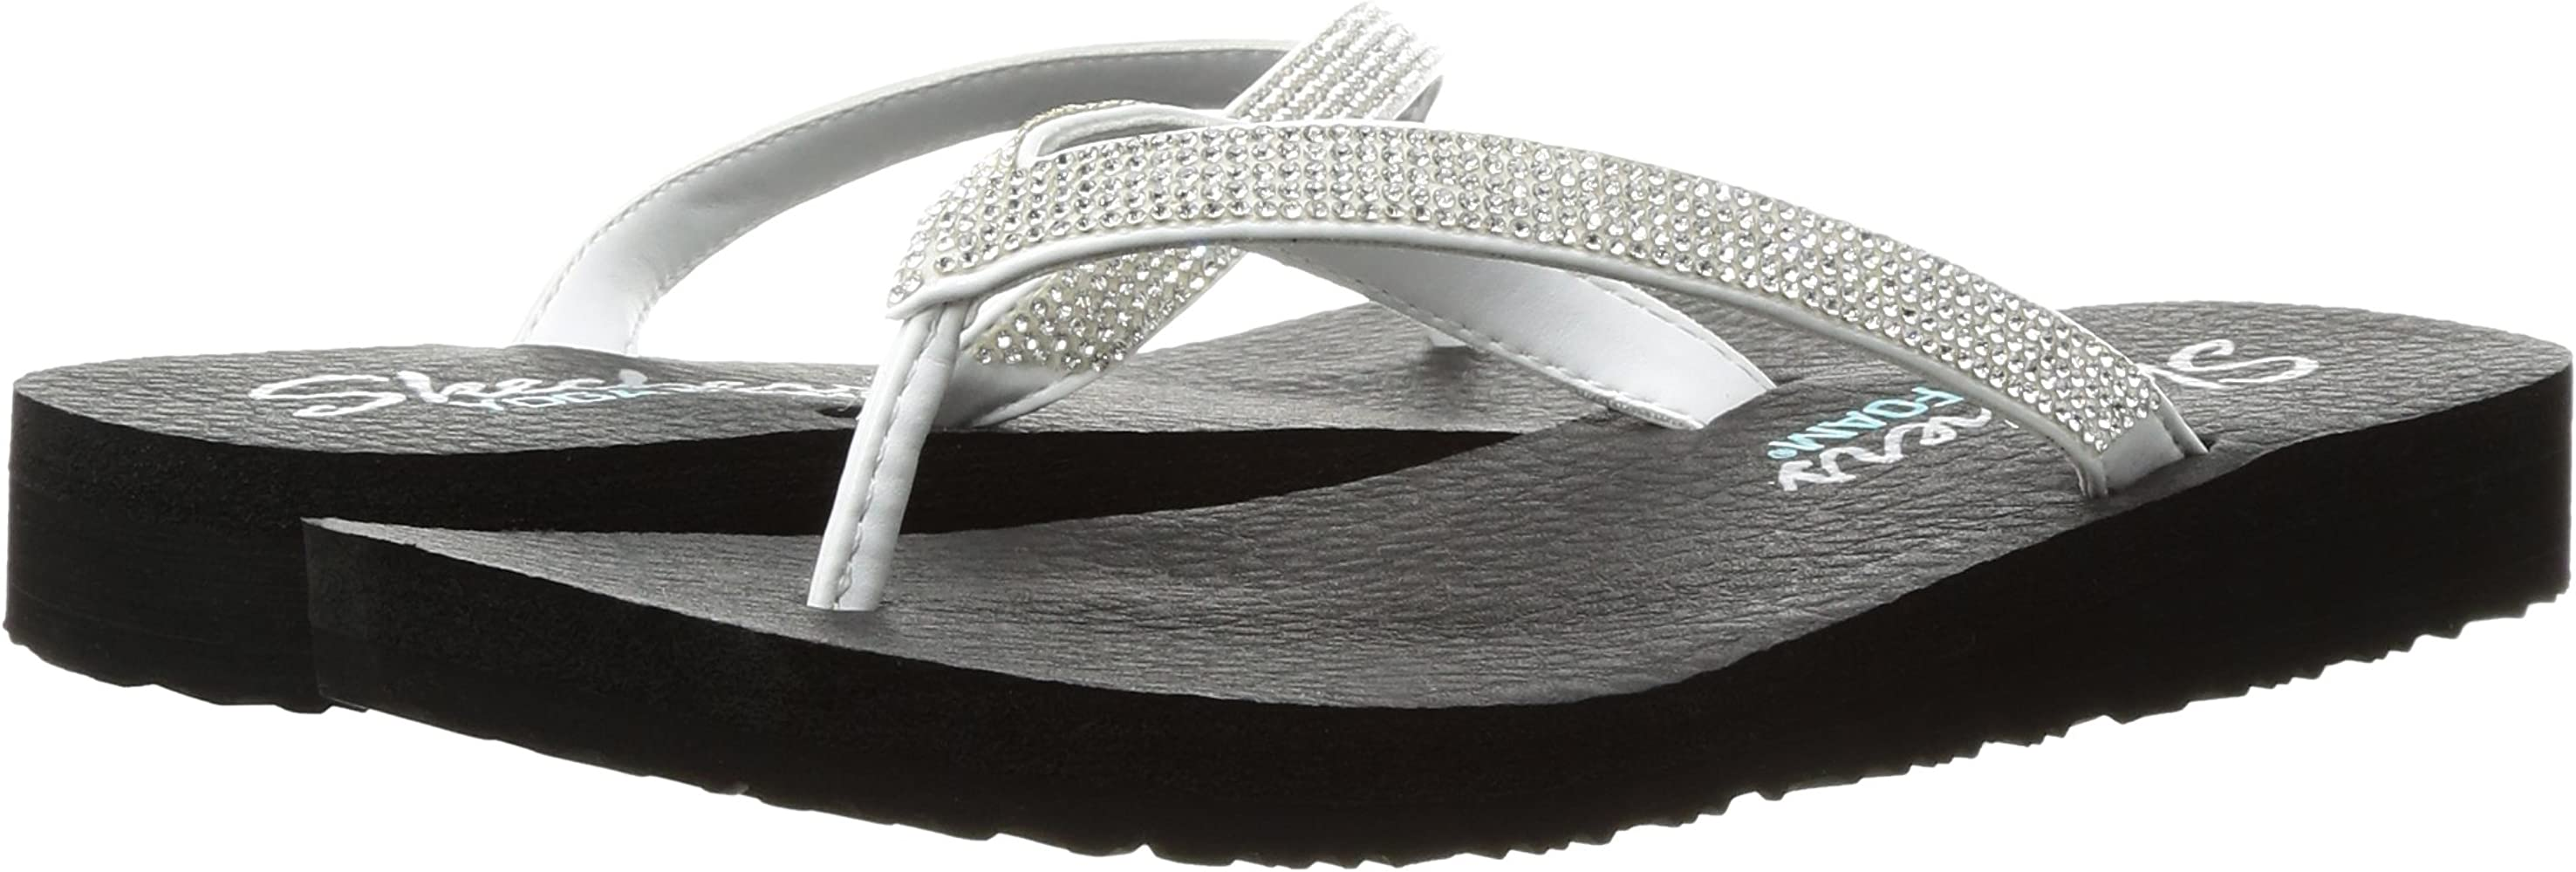 Skechers 38625, Chanclas para Mujer